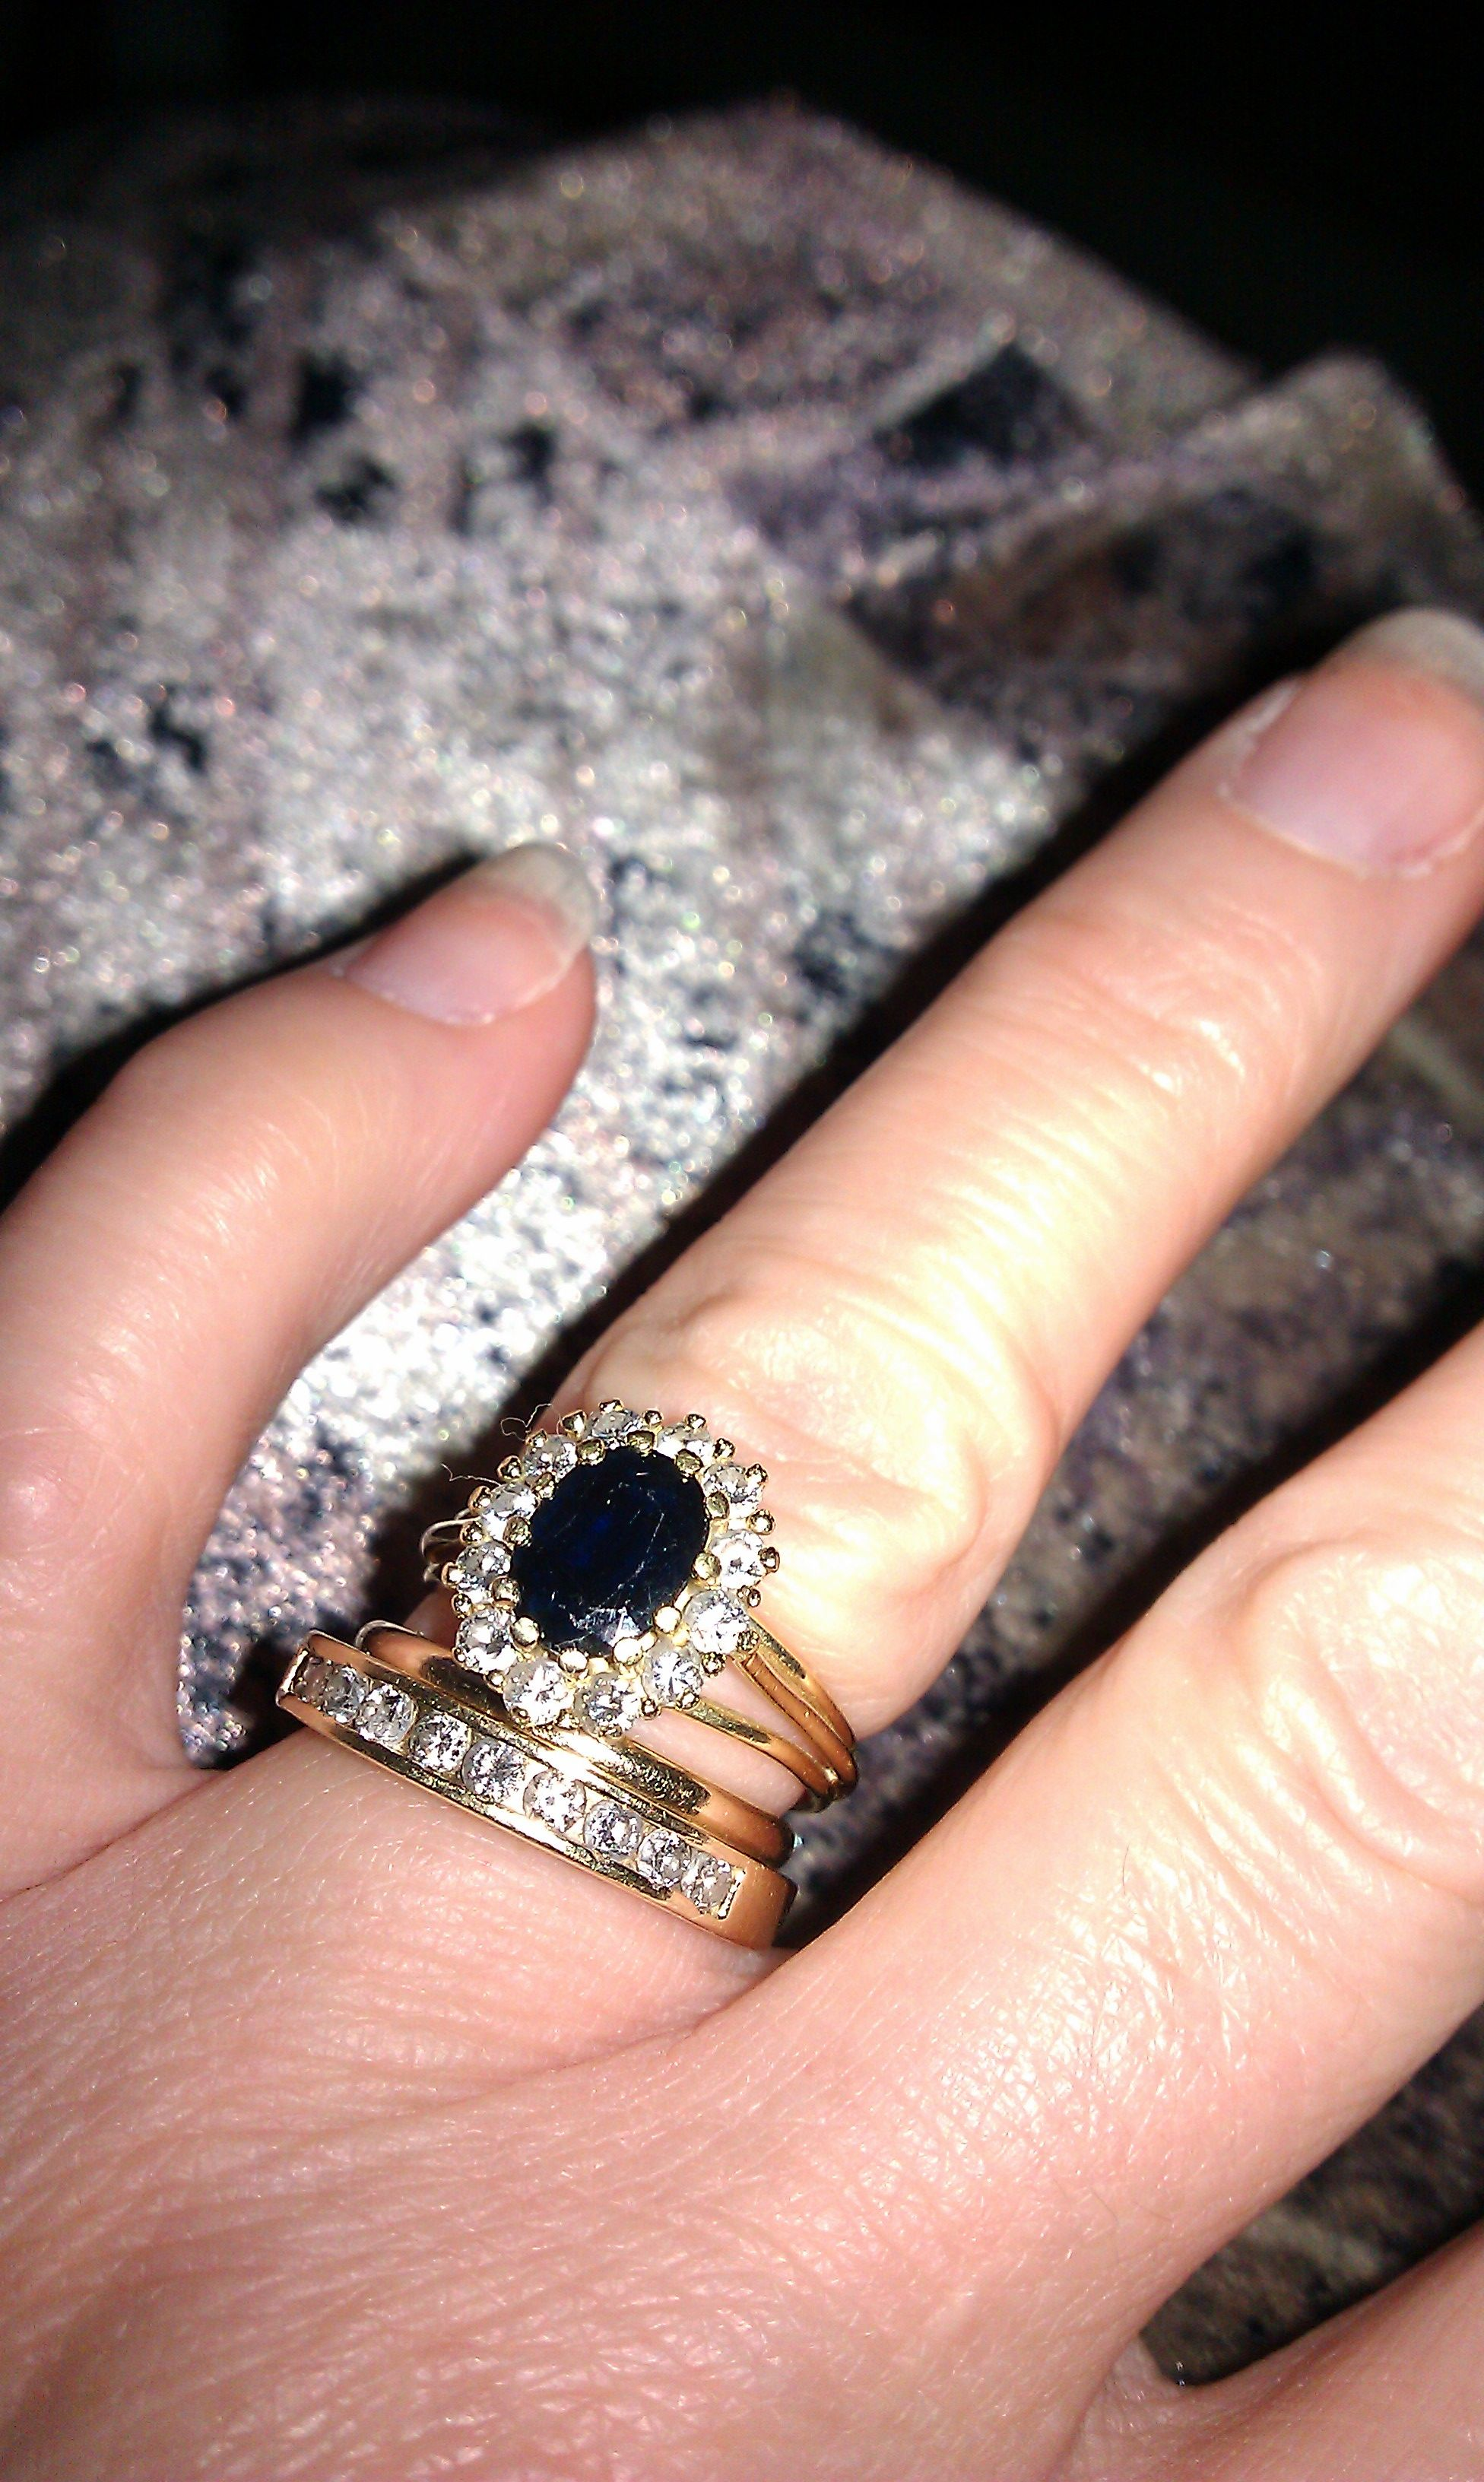 Wedding Ring Engagement Ring Accessories Engagement Rings